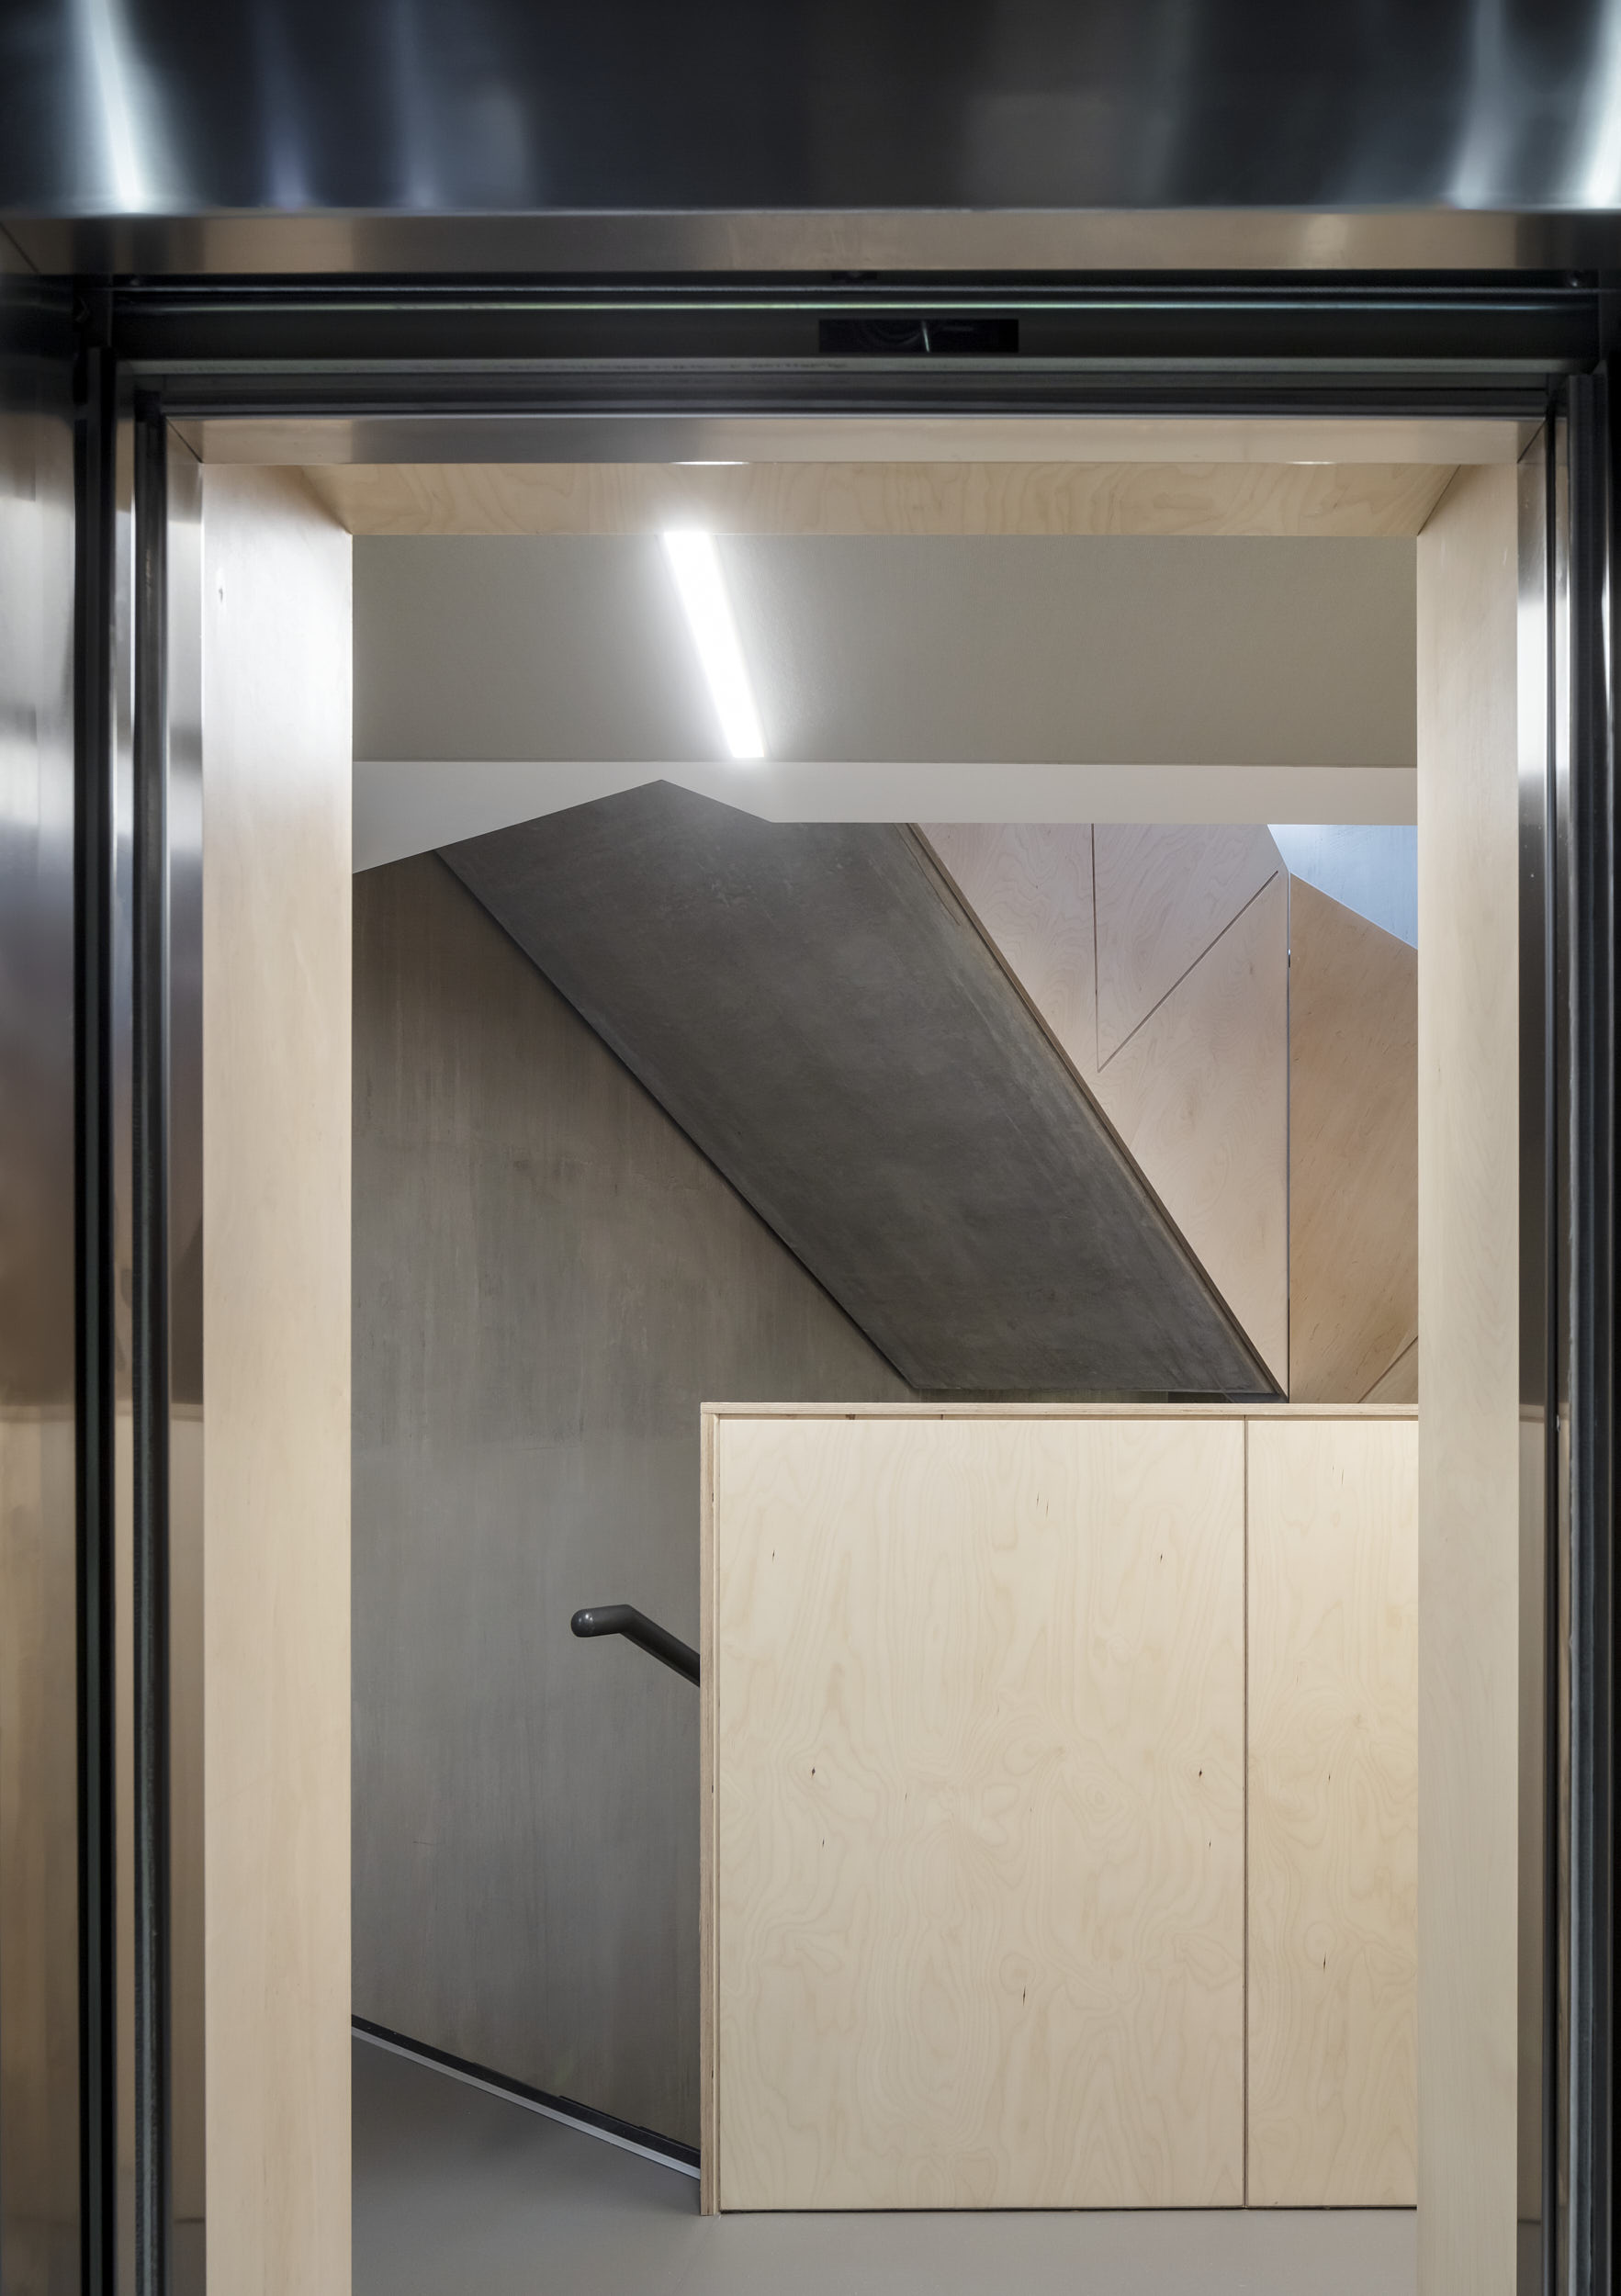 Interior view from the lift lobby showing the ply panelling and sculptural concrete stair.